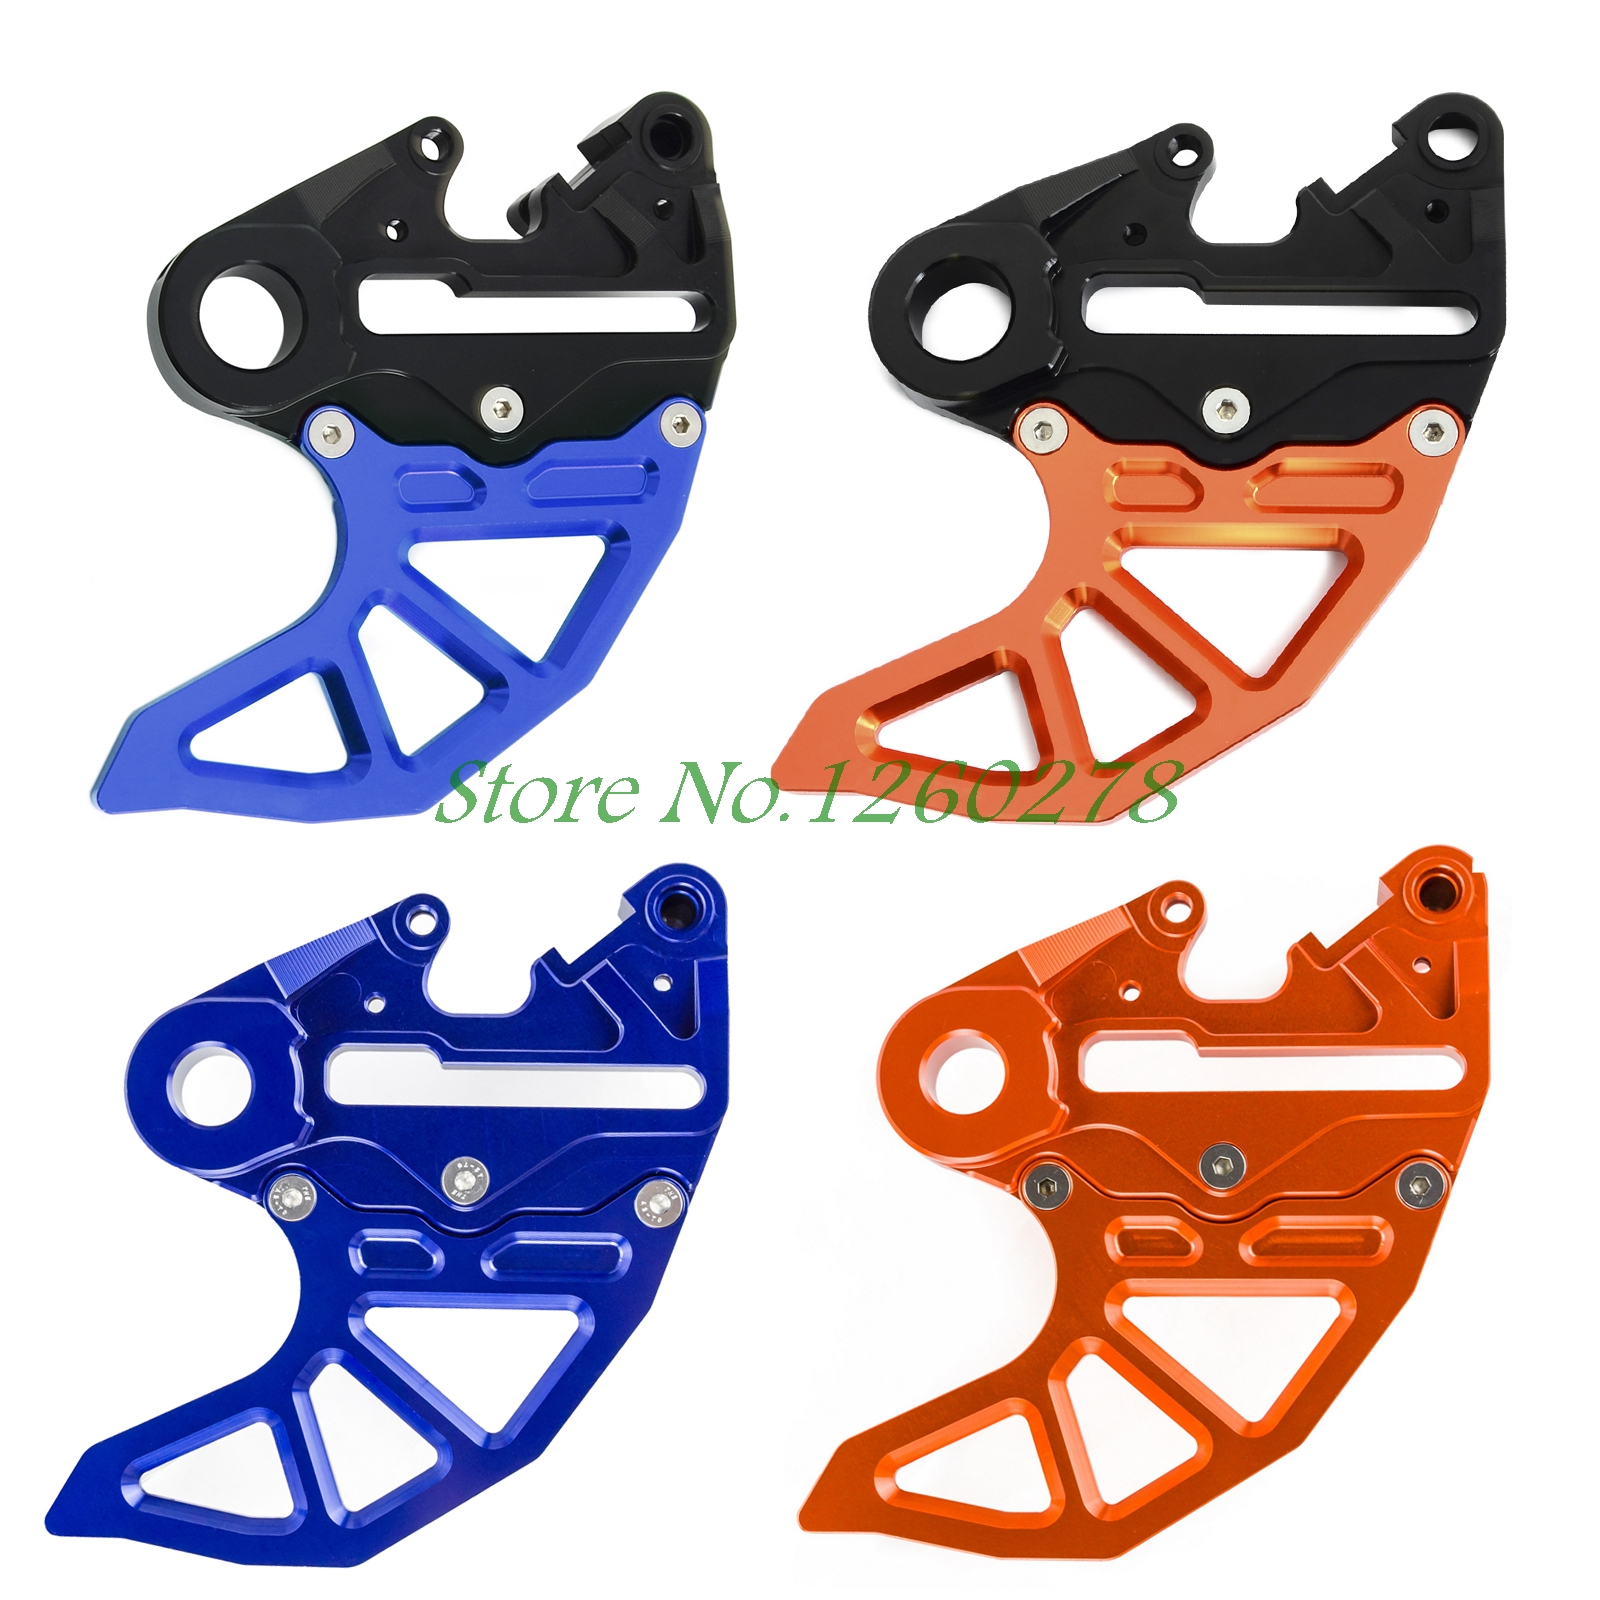 NICECNC Caliper Support Rear Brake Disc Guard For KTM 125 200 250 300 390 450 500 525 530 SX/SX-F EXC/EXC-F/XC-W/XCF-W billet cnc rear brake disc guard w caliper bracket for ktm 125 450 sx sx f smr xc xc f 2013 2014 2015 2016